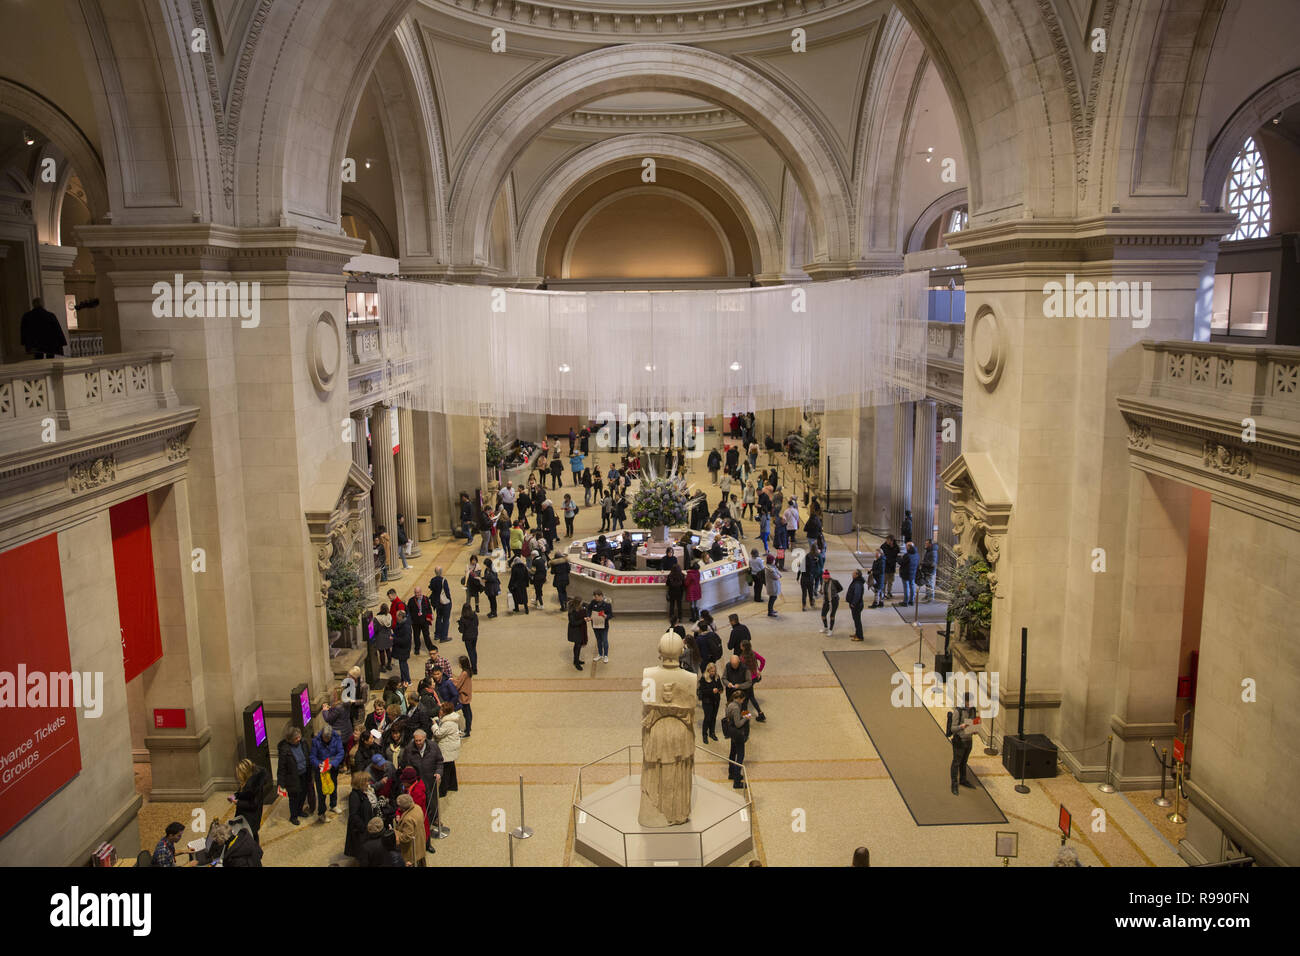 Looking across the Great Hall  entrance at the Metropolitan Museum of Art in New York City. Stock Photo